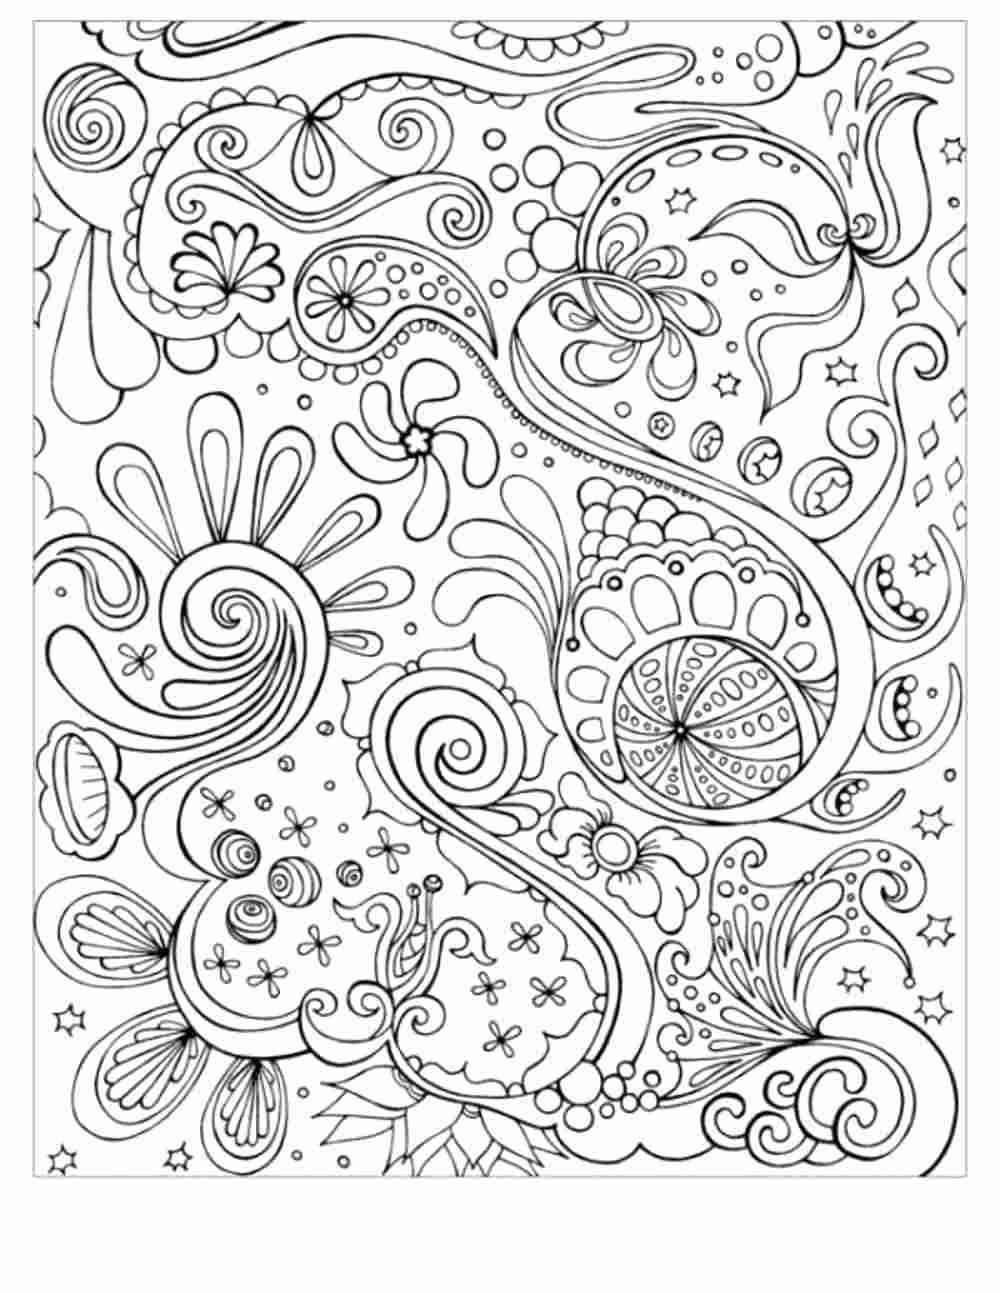 Abstract Coloring Pages Online Gallery 11t - Free Download